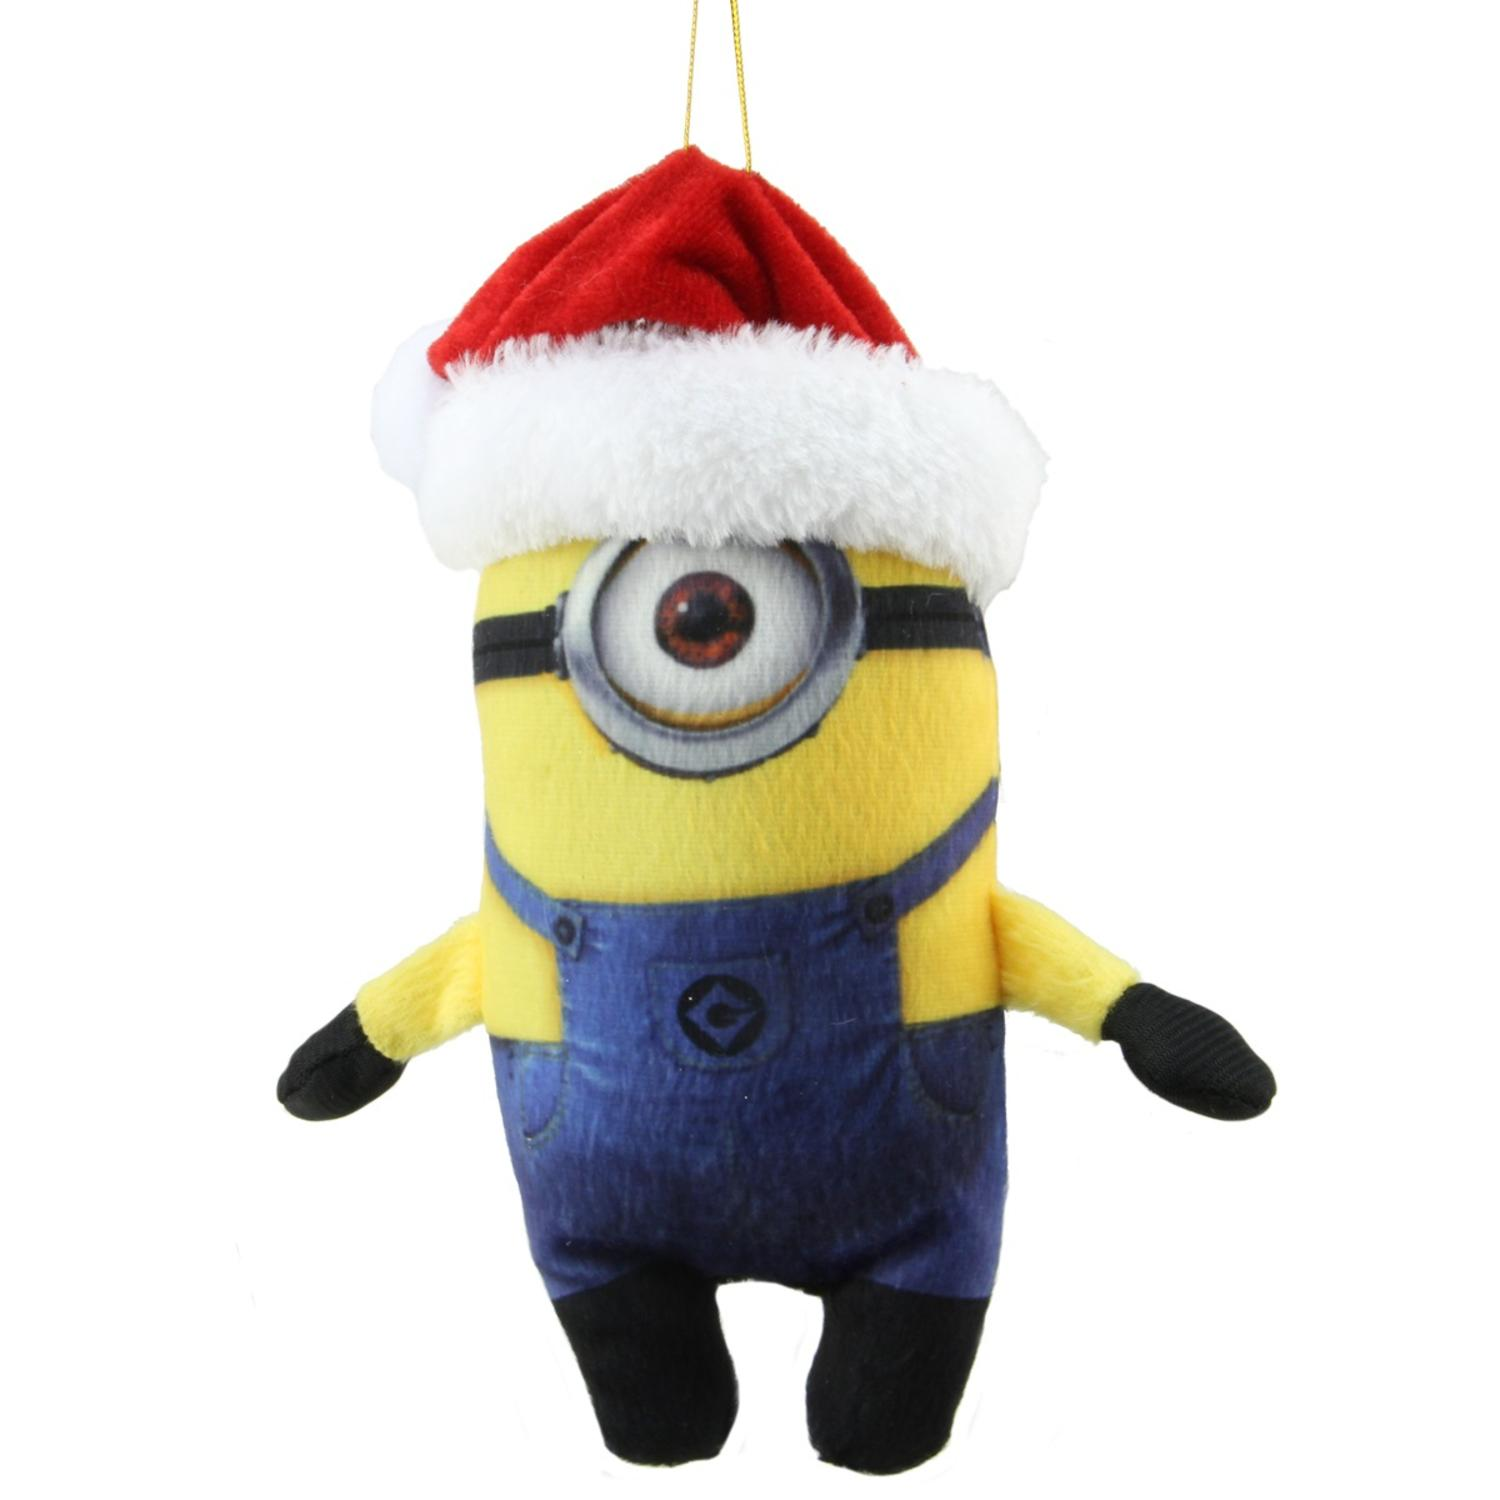 "Kurt S. Adler 7"" Despicable Me Miniature Plush Minion ..."